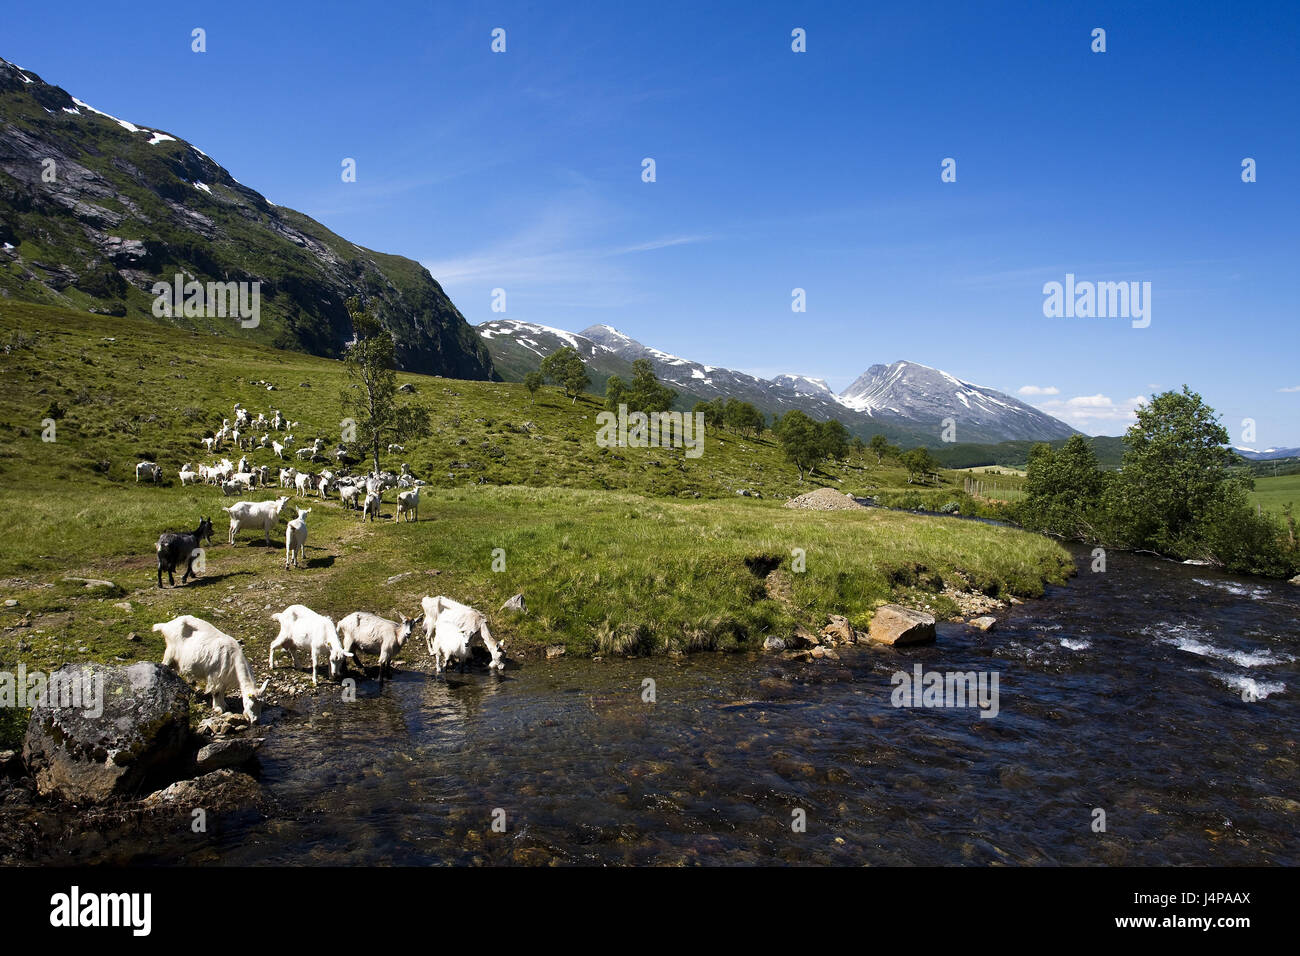 Norway, More og Romsdal, goat focuses, Stock Photo